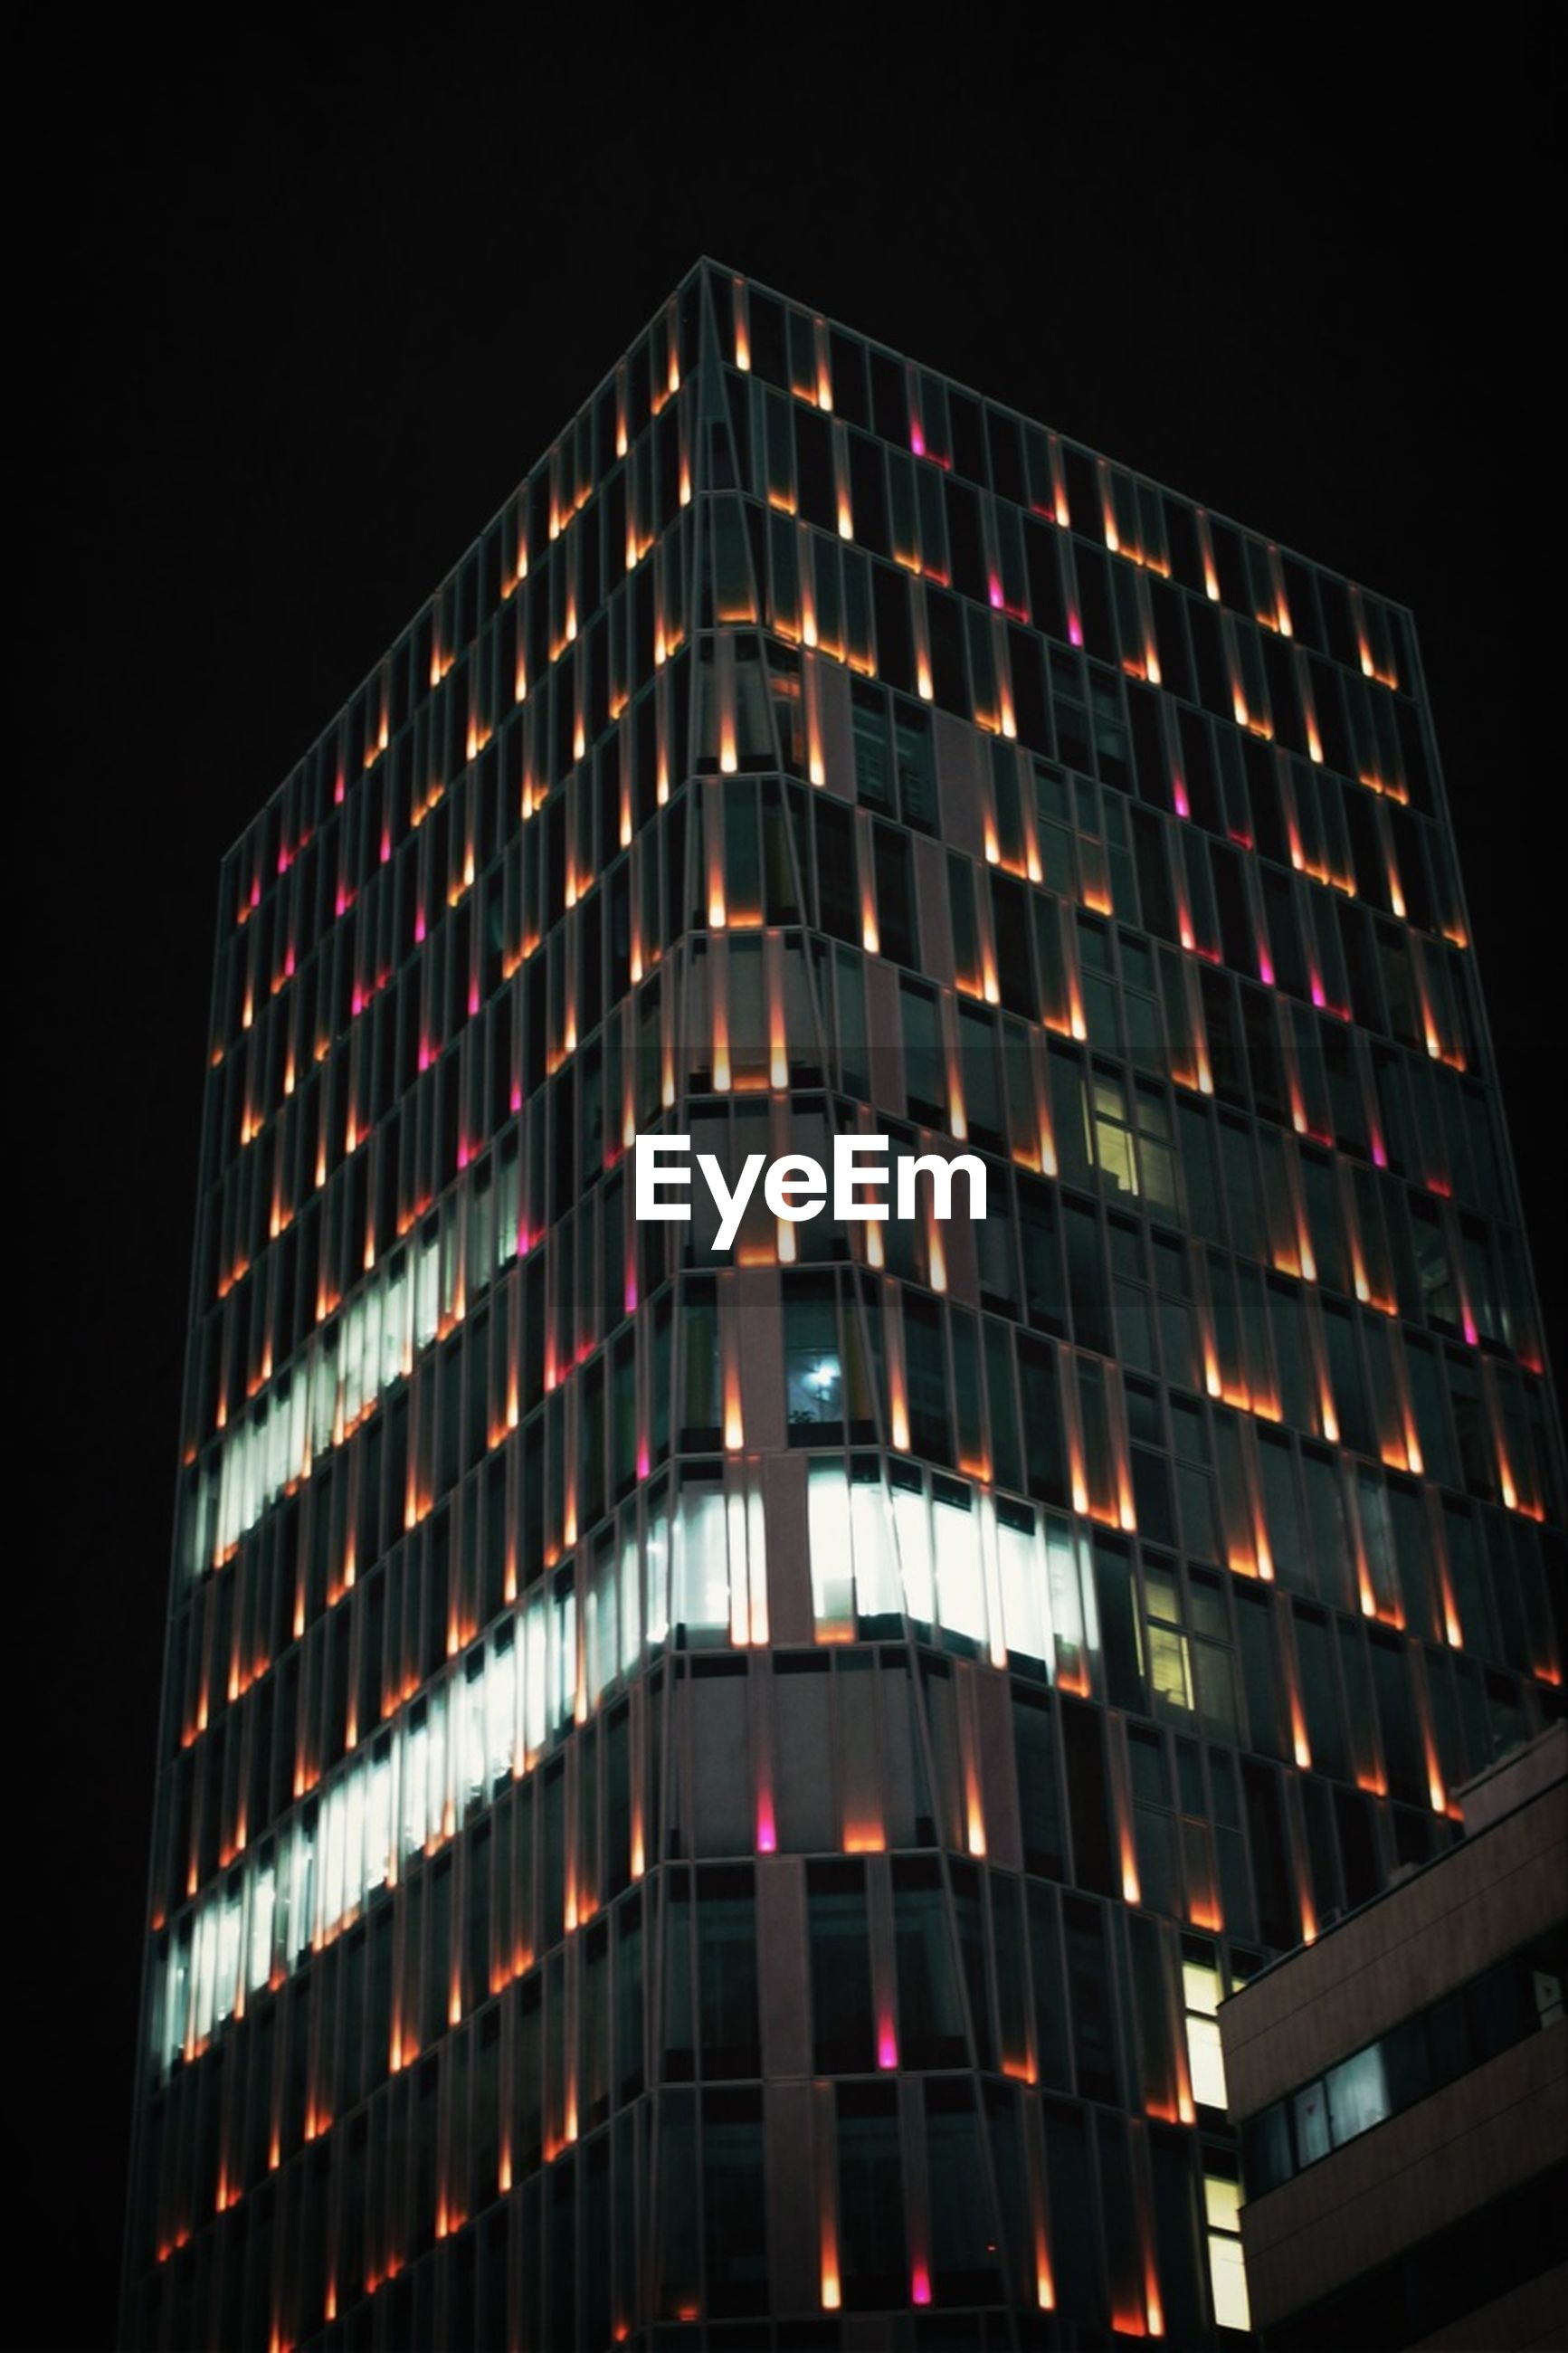 architecture, building exterior, low angle view, built structure, night, illuminated, city, modern, building, office building, skyscraper, window, tall - high, sky, tower, clear sky, no people, residential building, outdoors, residential structure